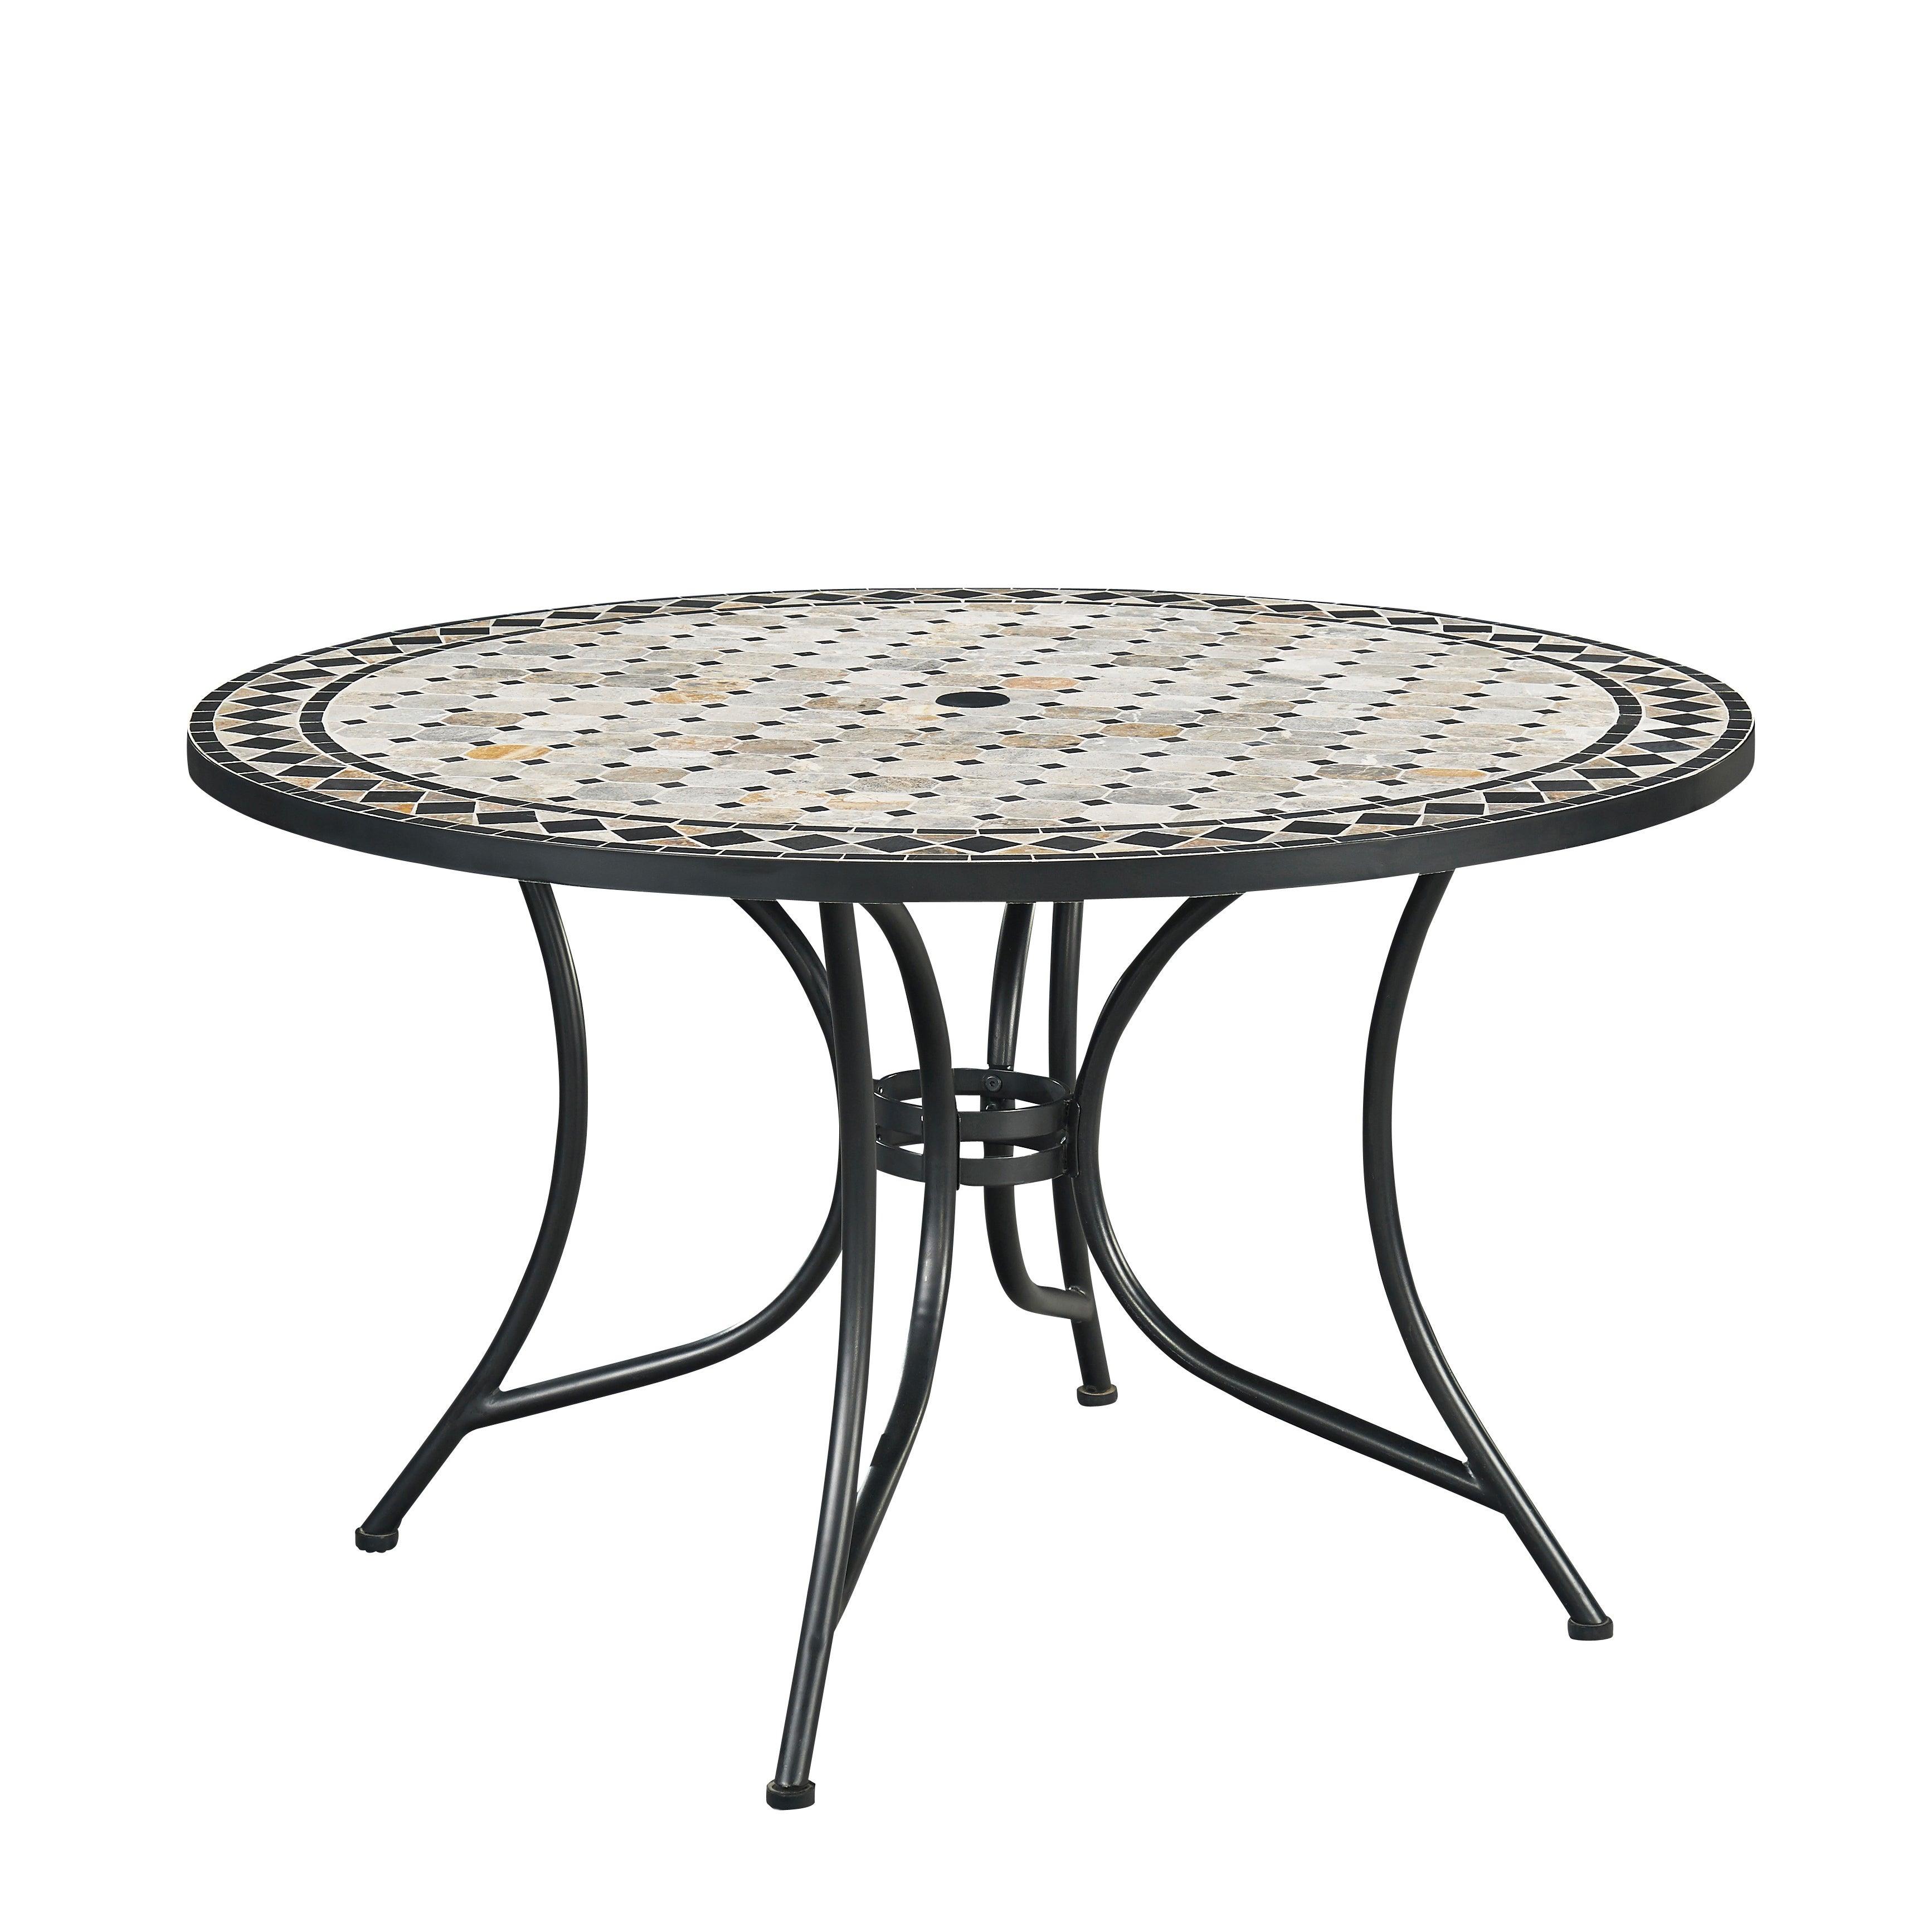 Marble Top Round Outdoor Dining Table by Home Styles (Mar...